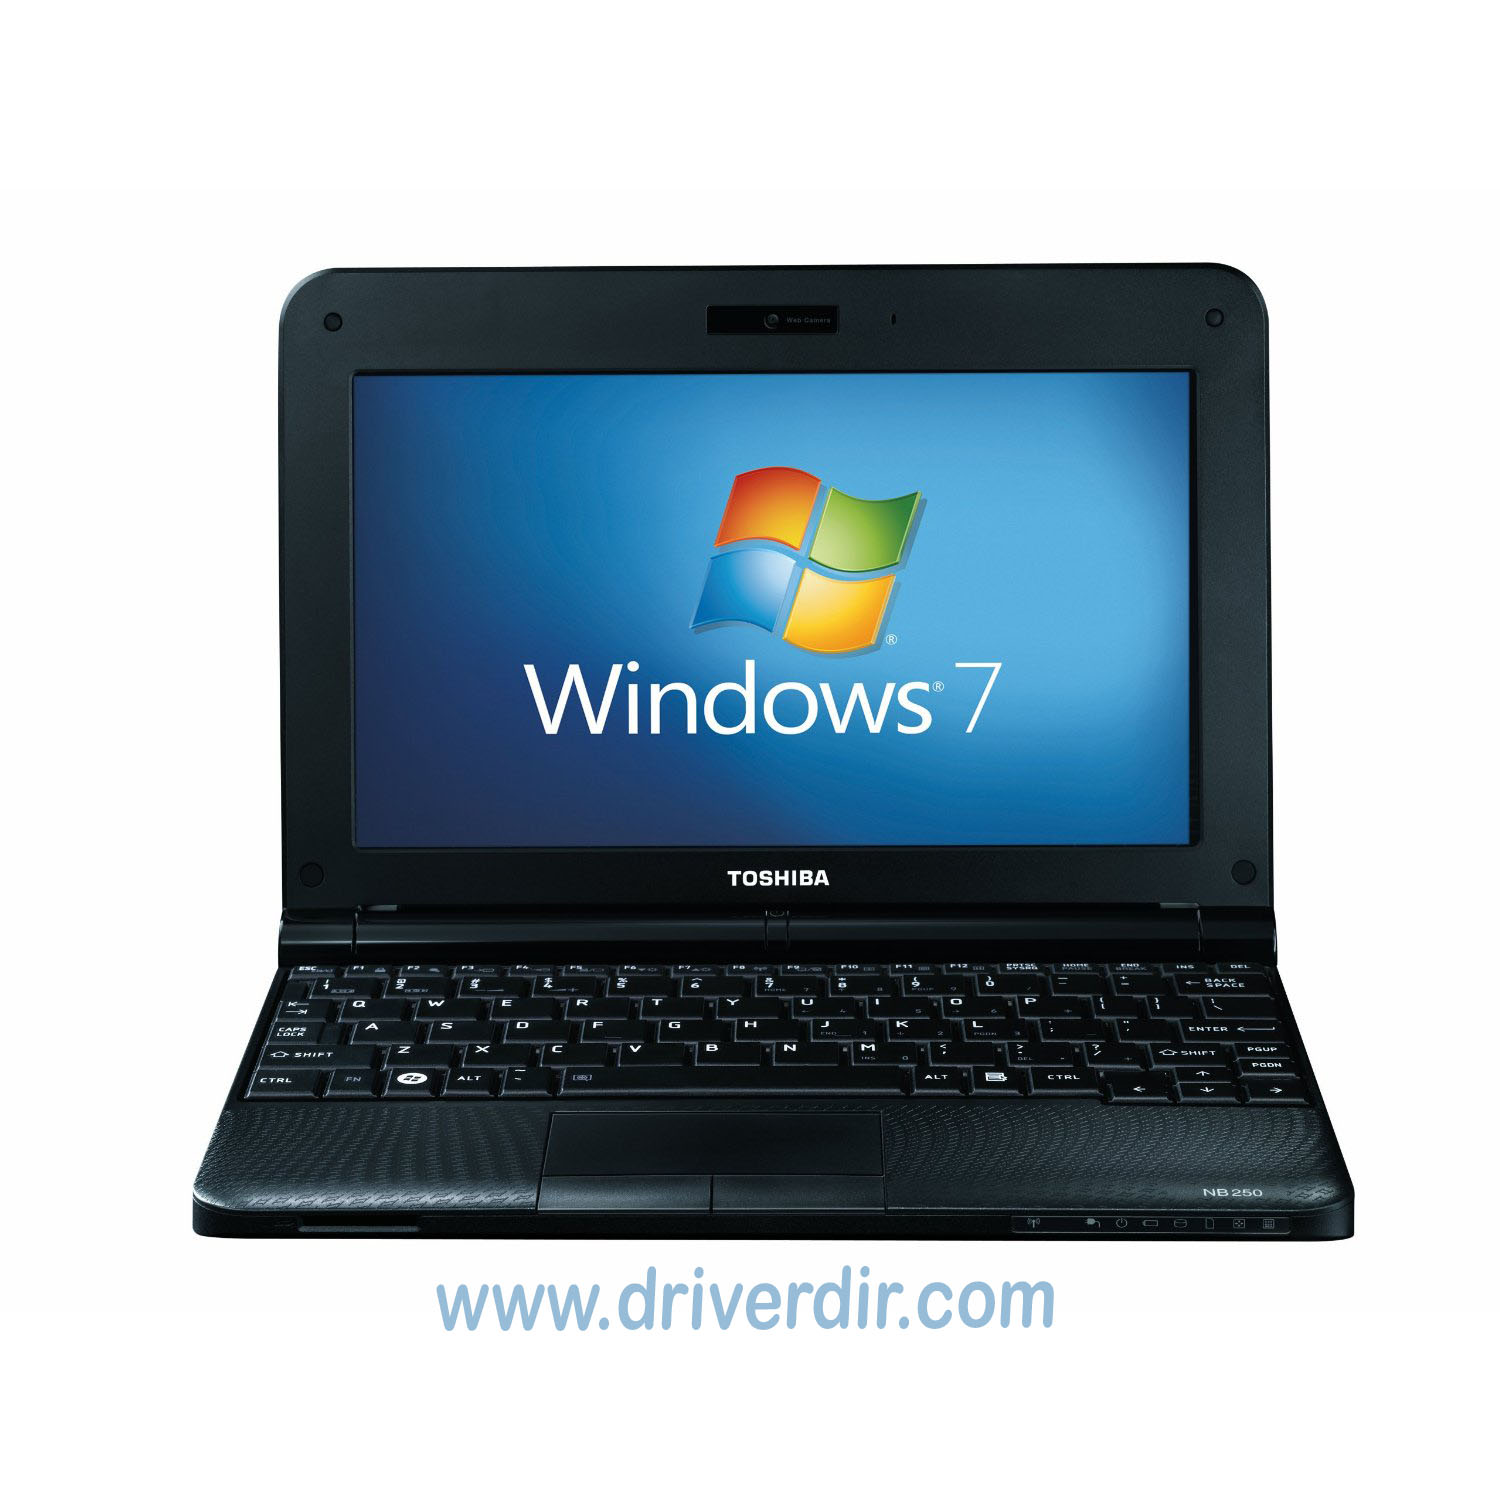 Toshiba satellite c660 wireless lan driver windows 7 32bit.